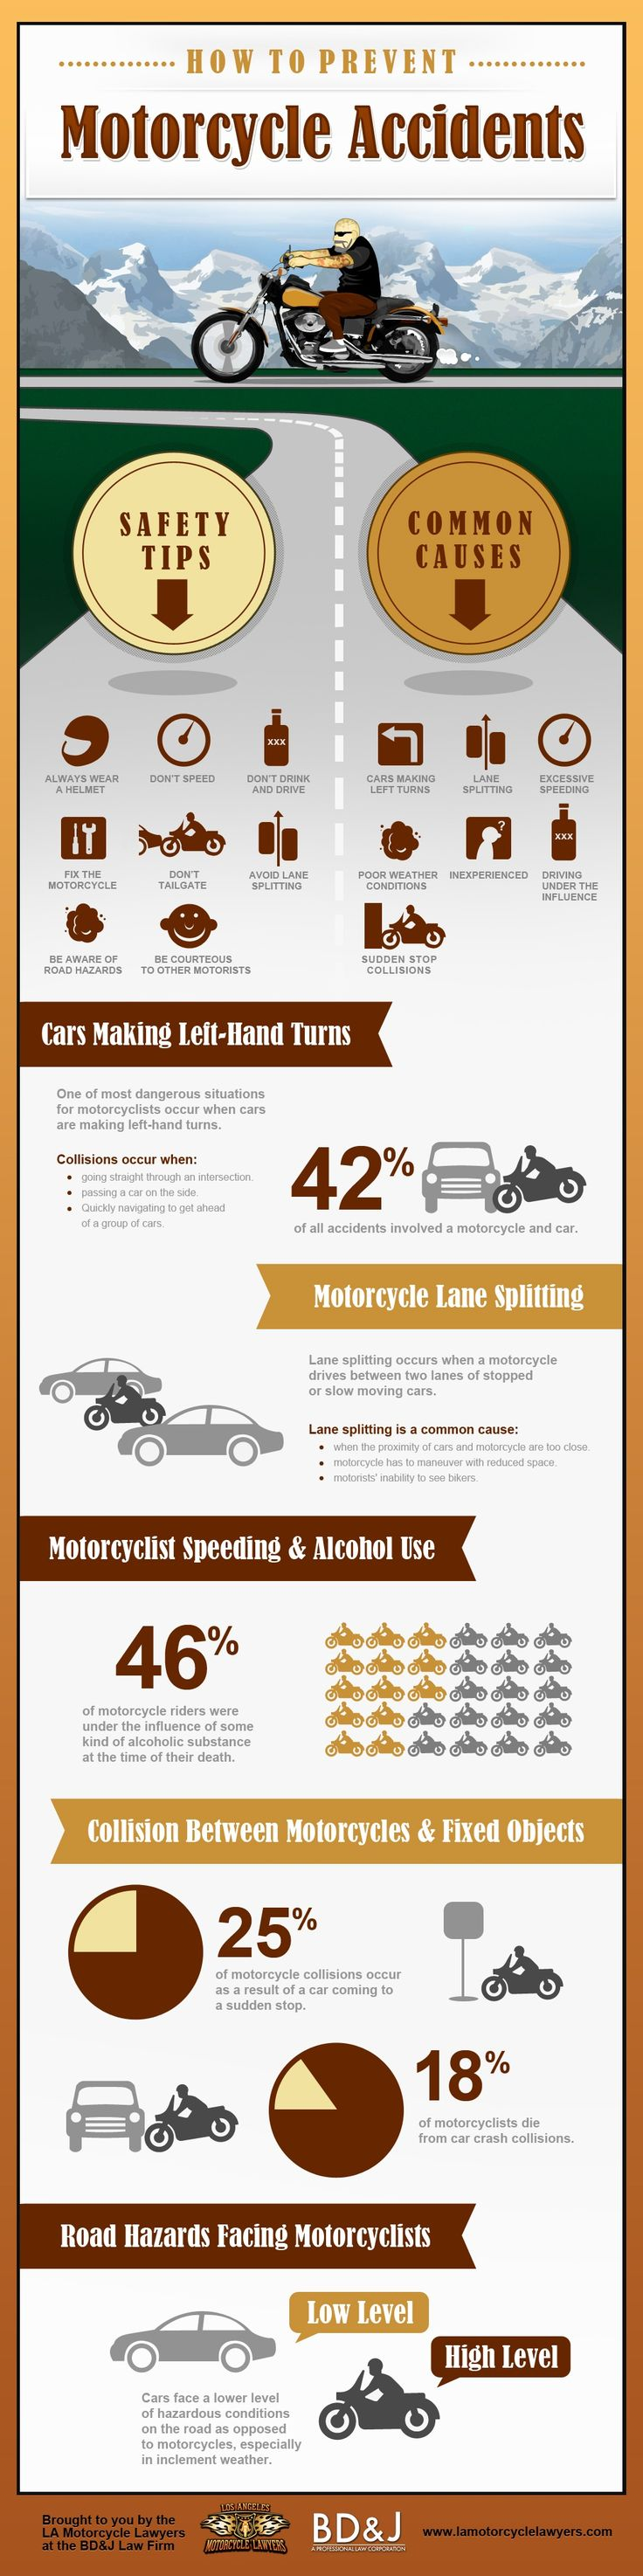 Infographic - how to prevent motorcycle accidents | #ChopperExchange #rideon #looktwice